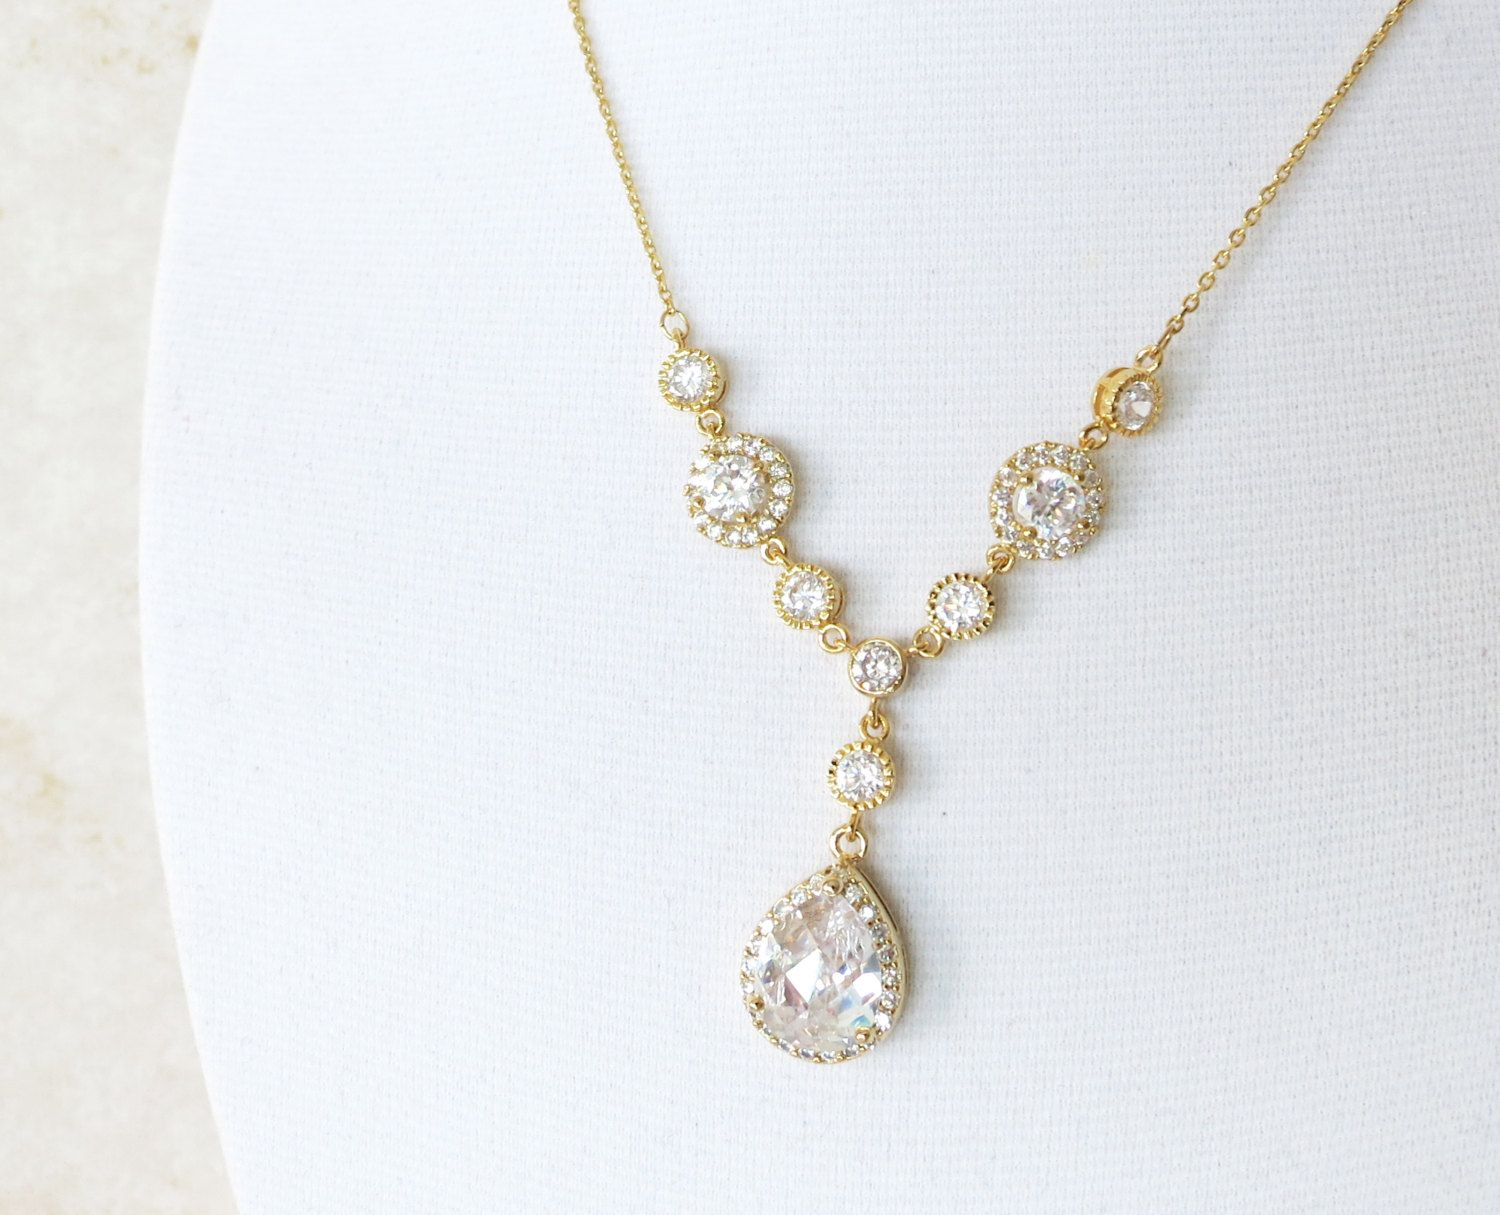 Introducing Wedding Jewelry from Glitz & Love | Crystal necklace ...